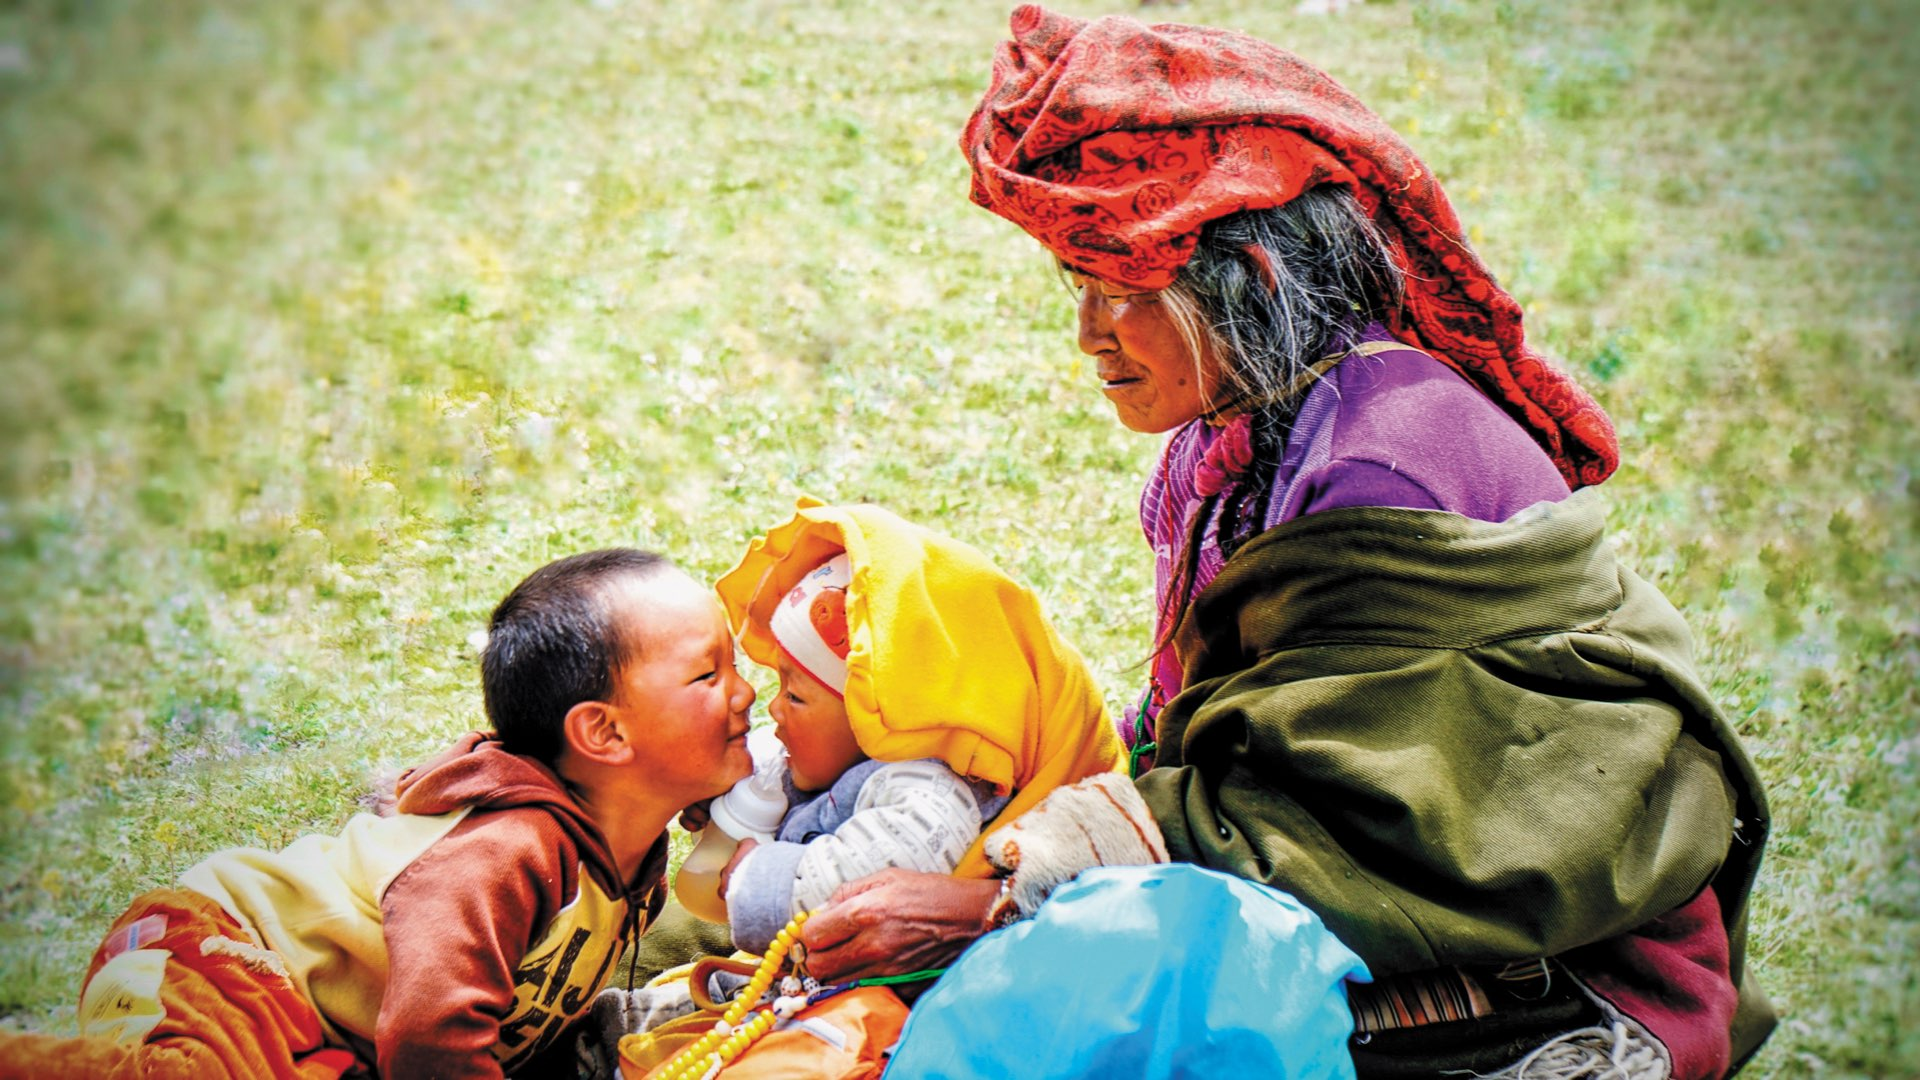 An elderly Mongolian woman holding a young baby face to face with a young Mongolian boy on the grass in vivid clothing